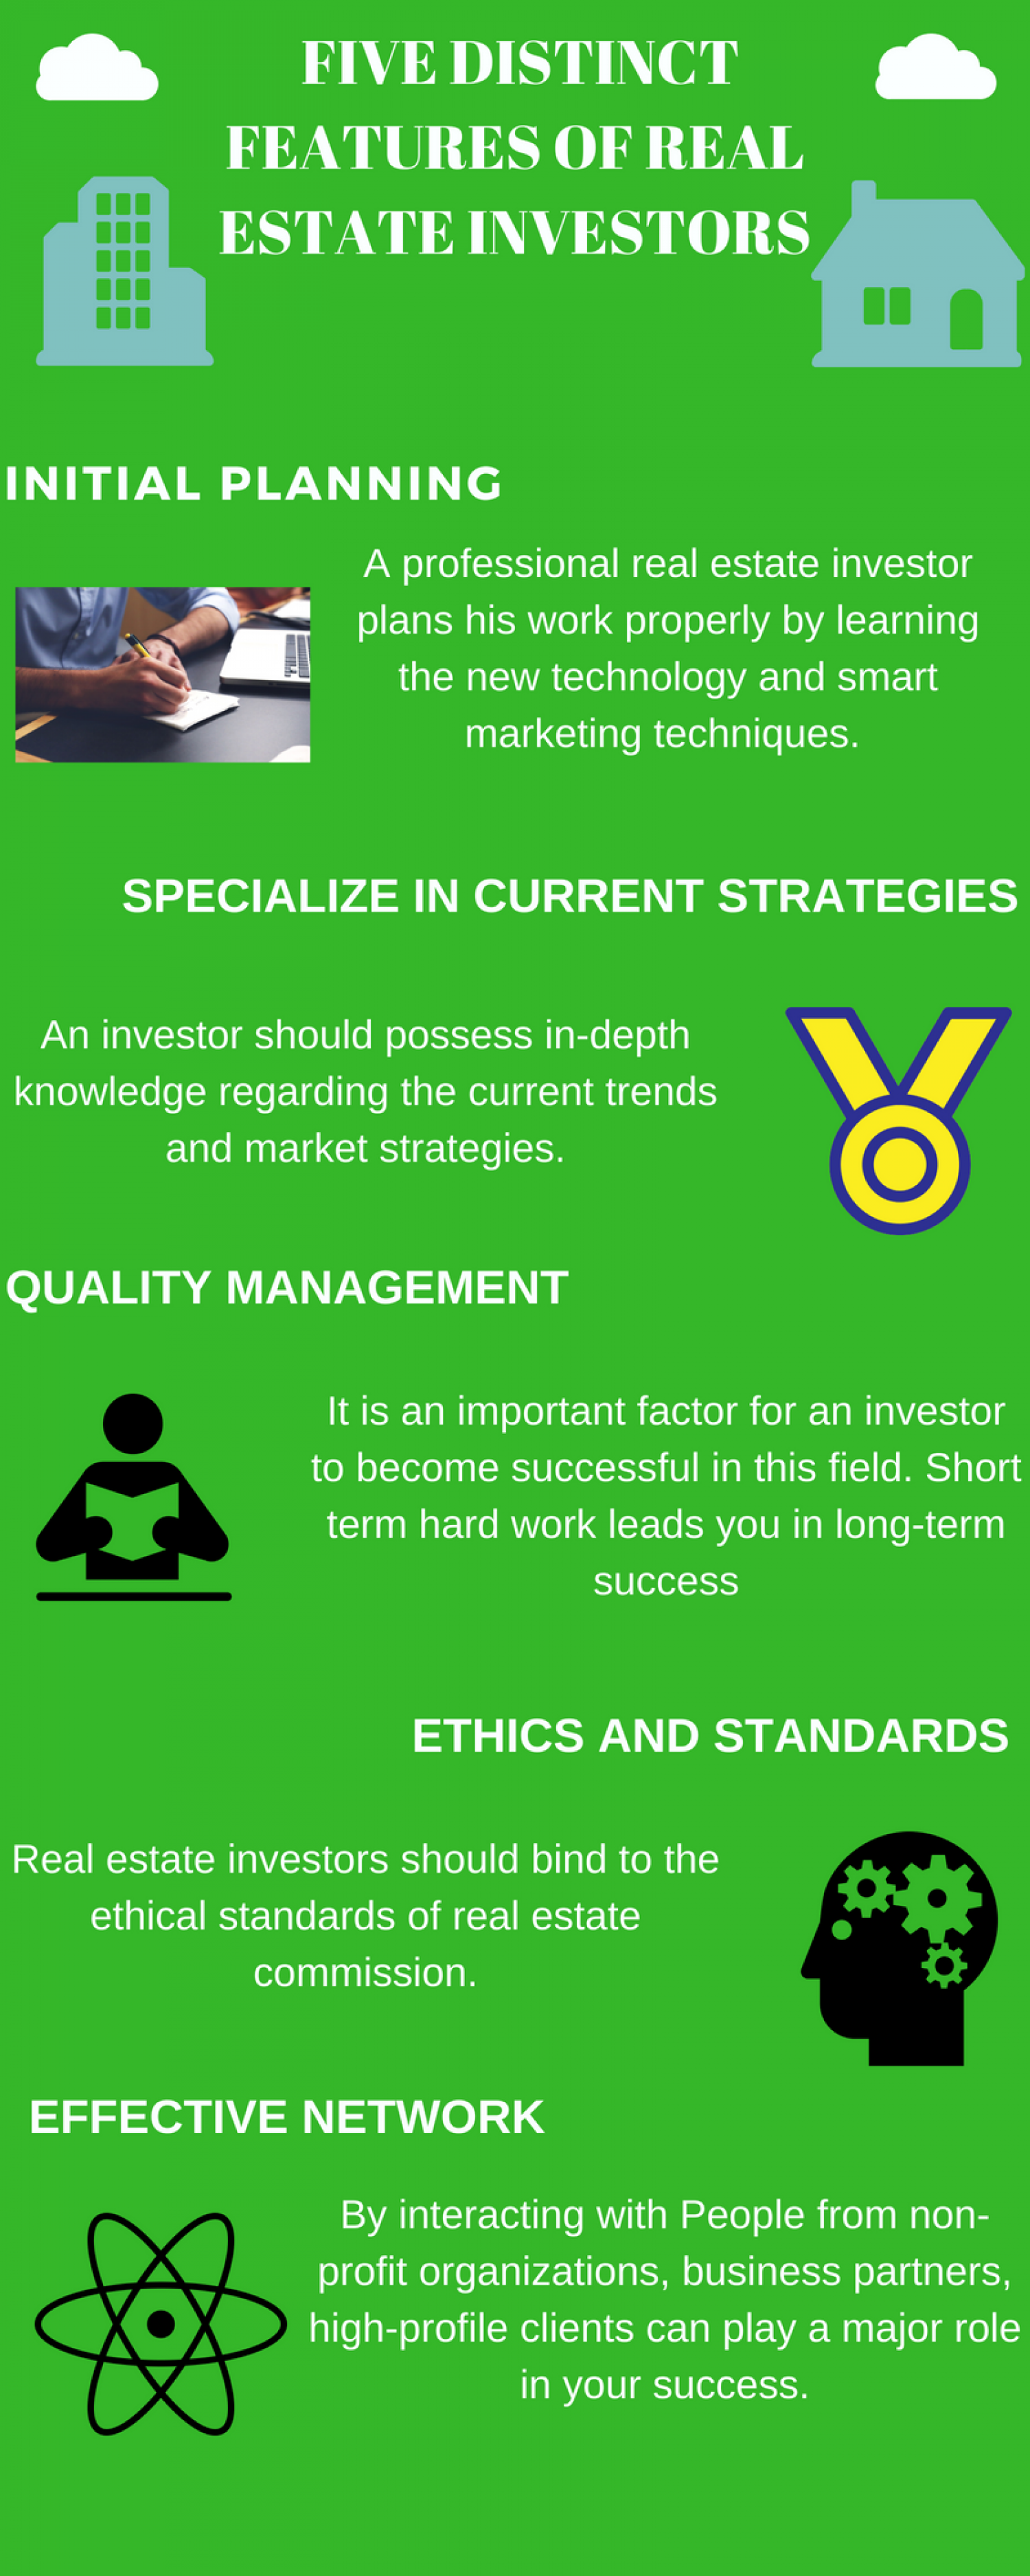 Five distinct features of real estate investor Infographic